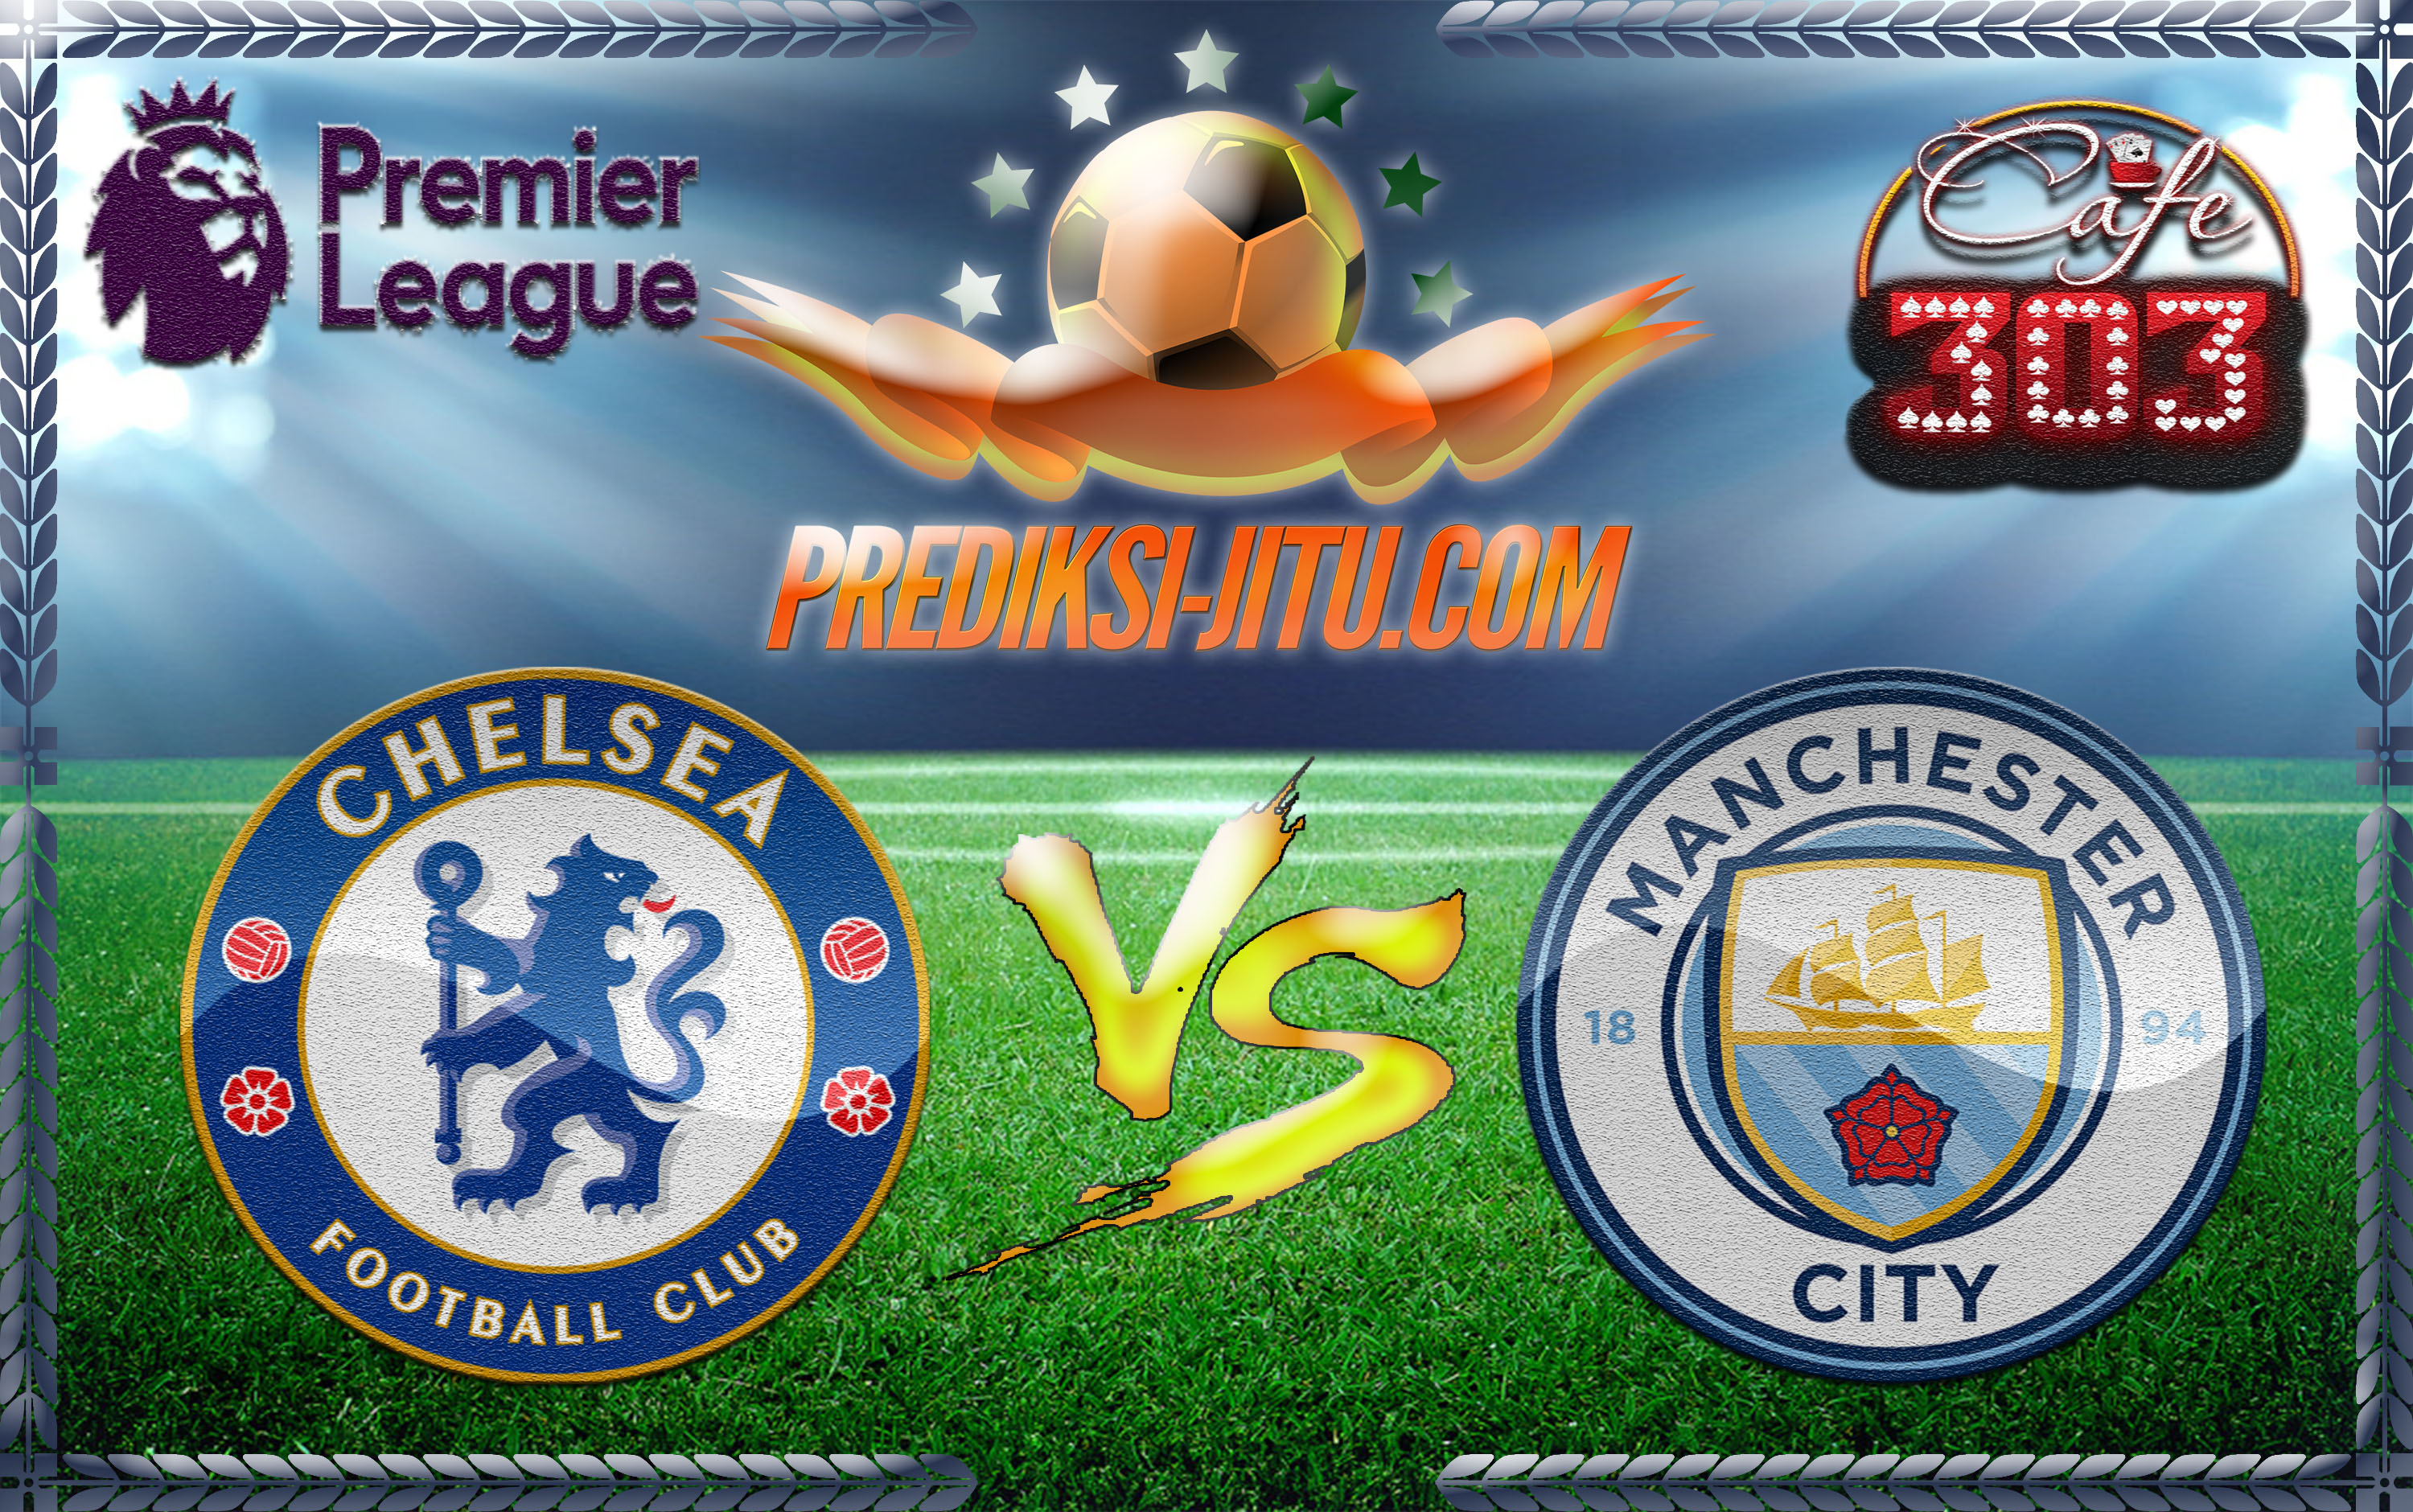 Manchester City Vs Chelsea 2017: Prediksi Skor Chelsea Vs Manchester City 6 April 2017